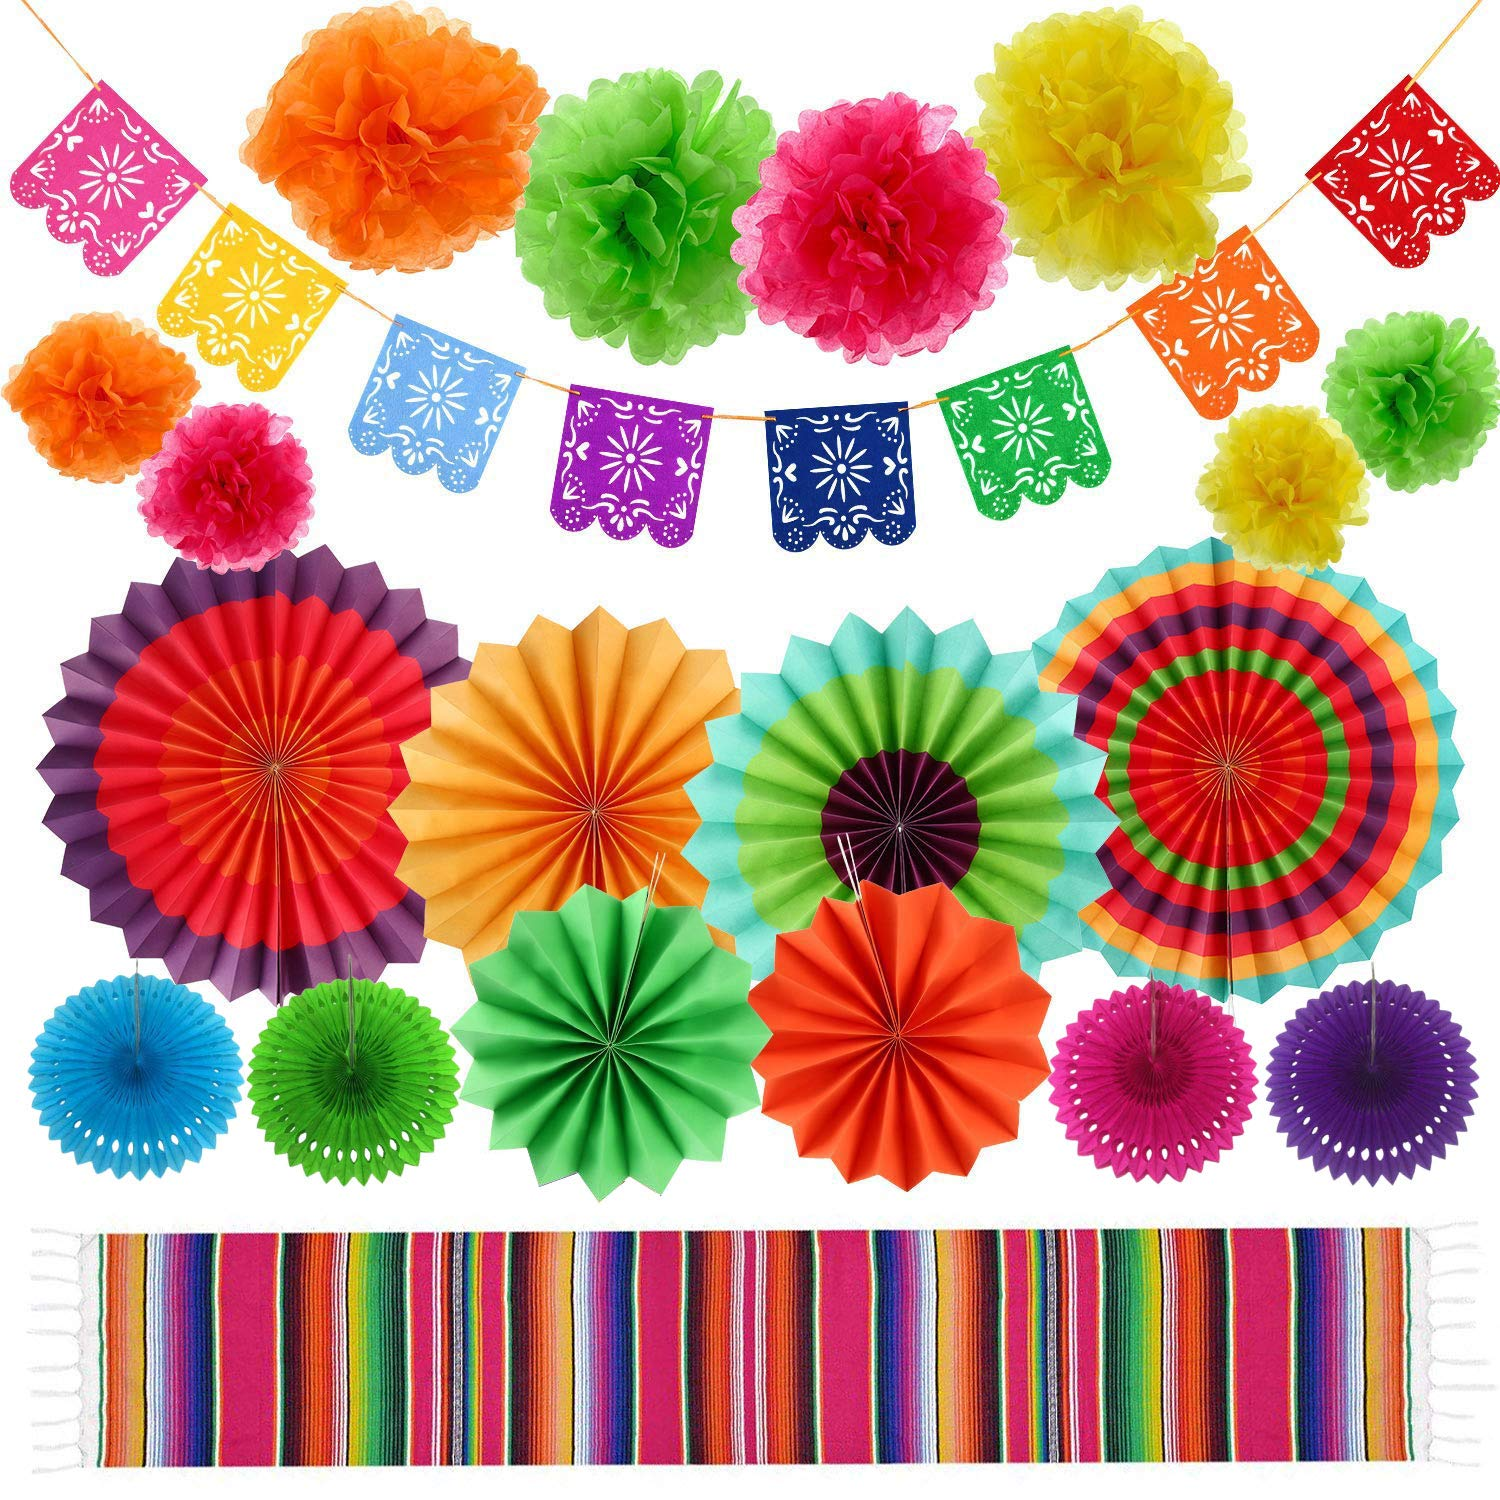 Fiesta Party Supplies Mexican Party Decorations Set 20 Pieces, Serape Table Runner, Paper Hollow Fans, Paper Fans, Pom Poms Flowers, Picado Banner for Cinco De Mayo Birthday Parties, Wedding Décor